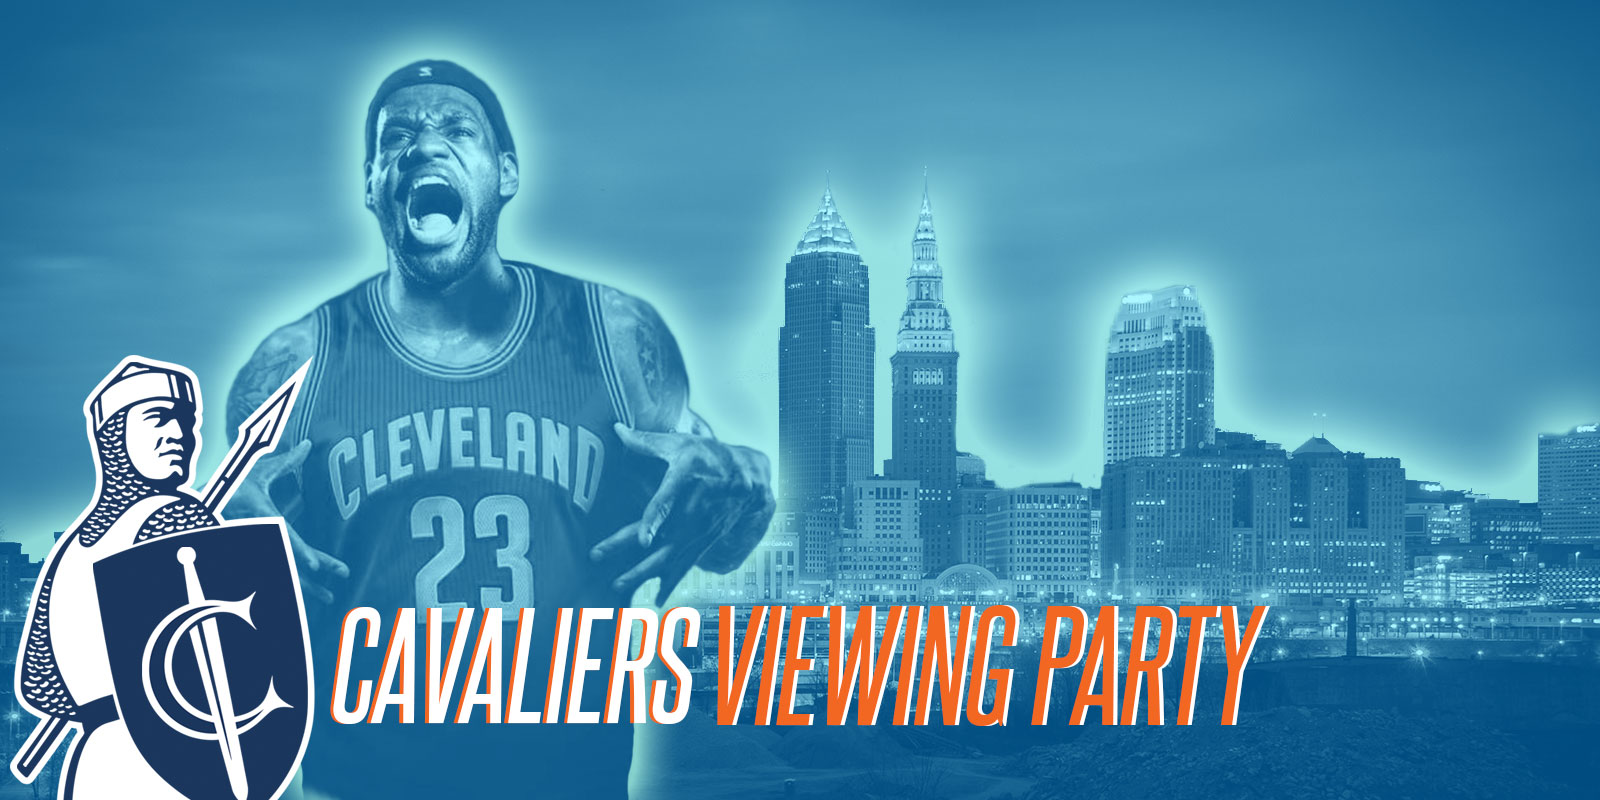 Cavaliers v. Chicago Bulls Viewing Party and Fundraiser – February 25th